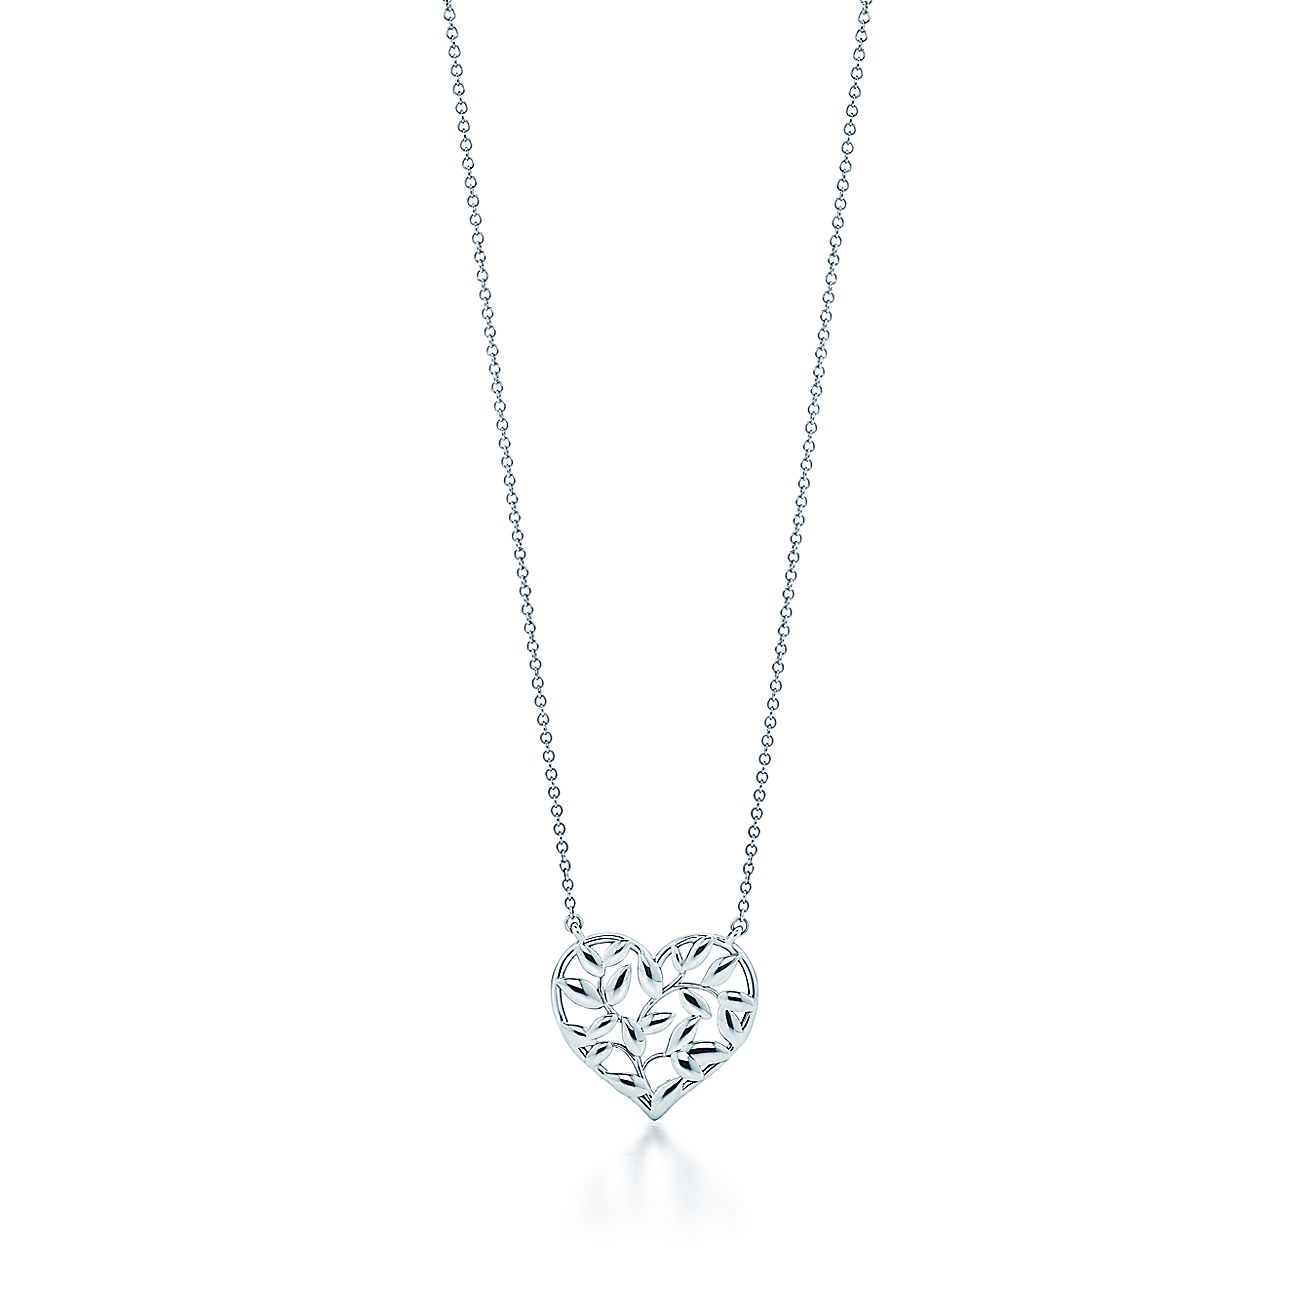 private label hitchcock necklace heart madrona jewellery